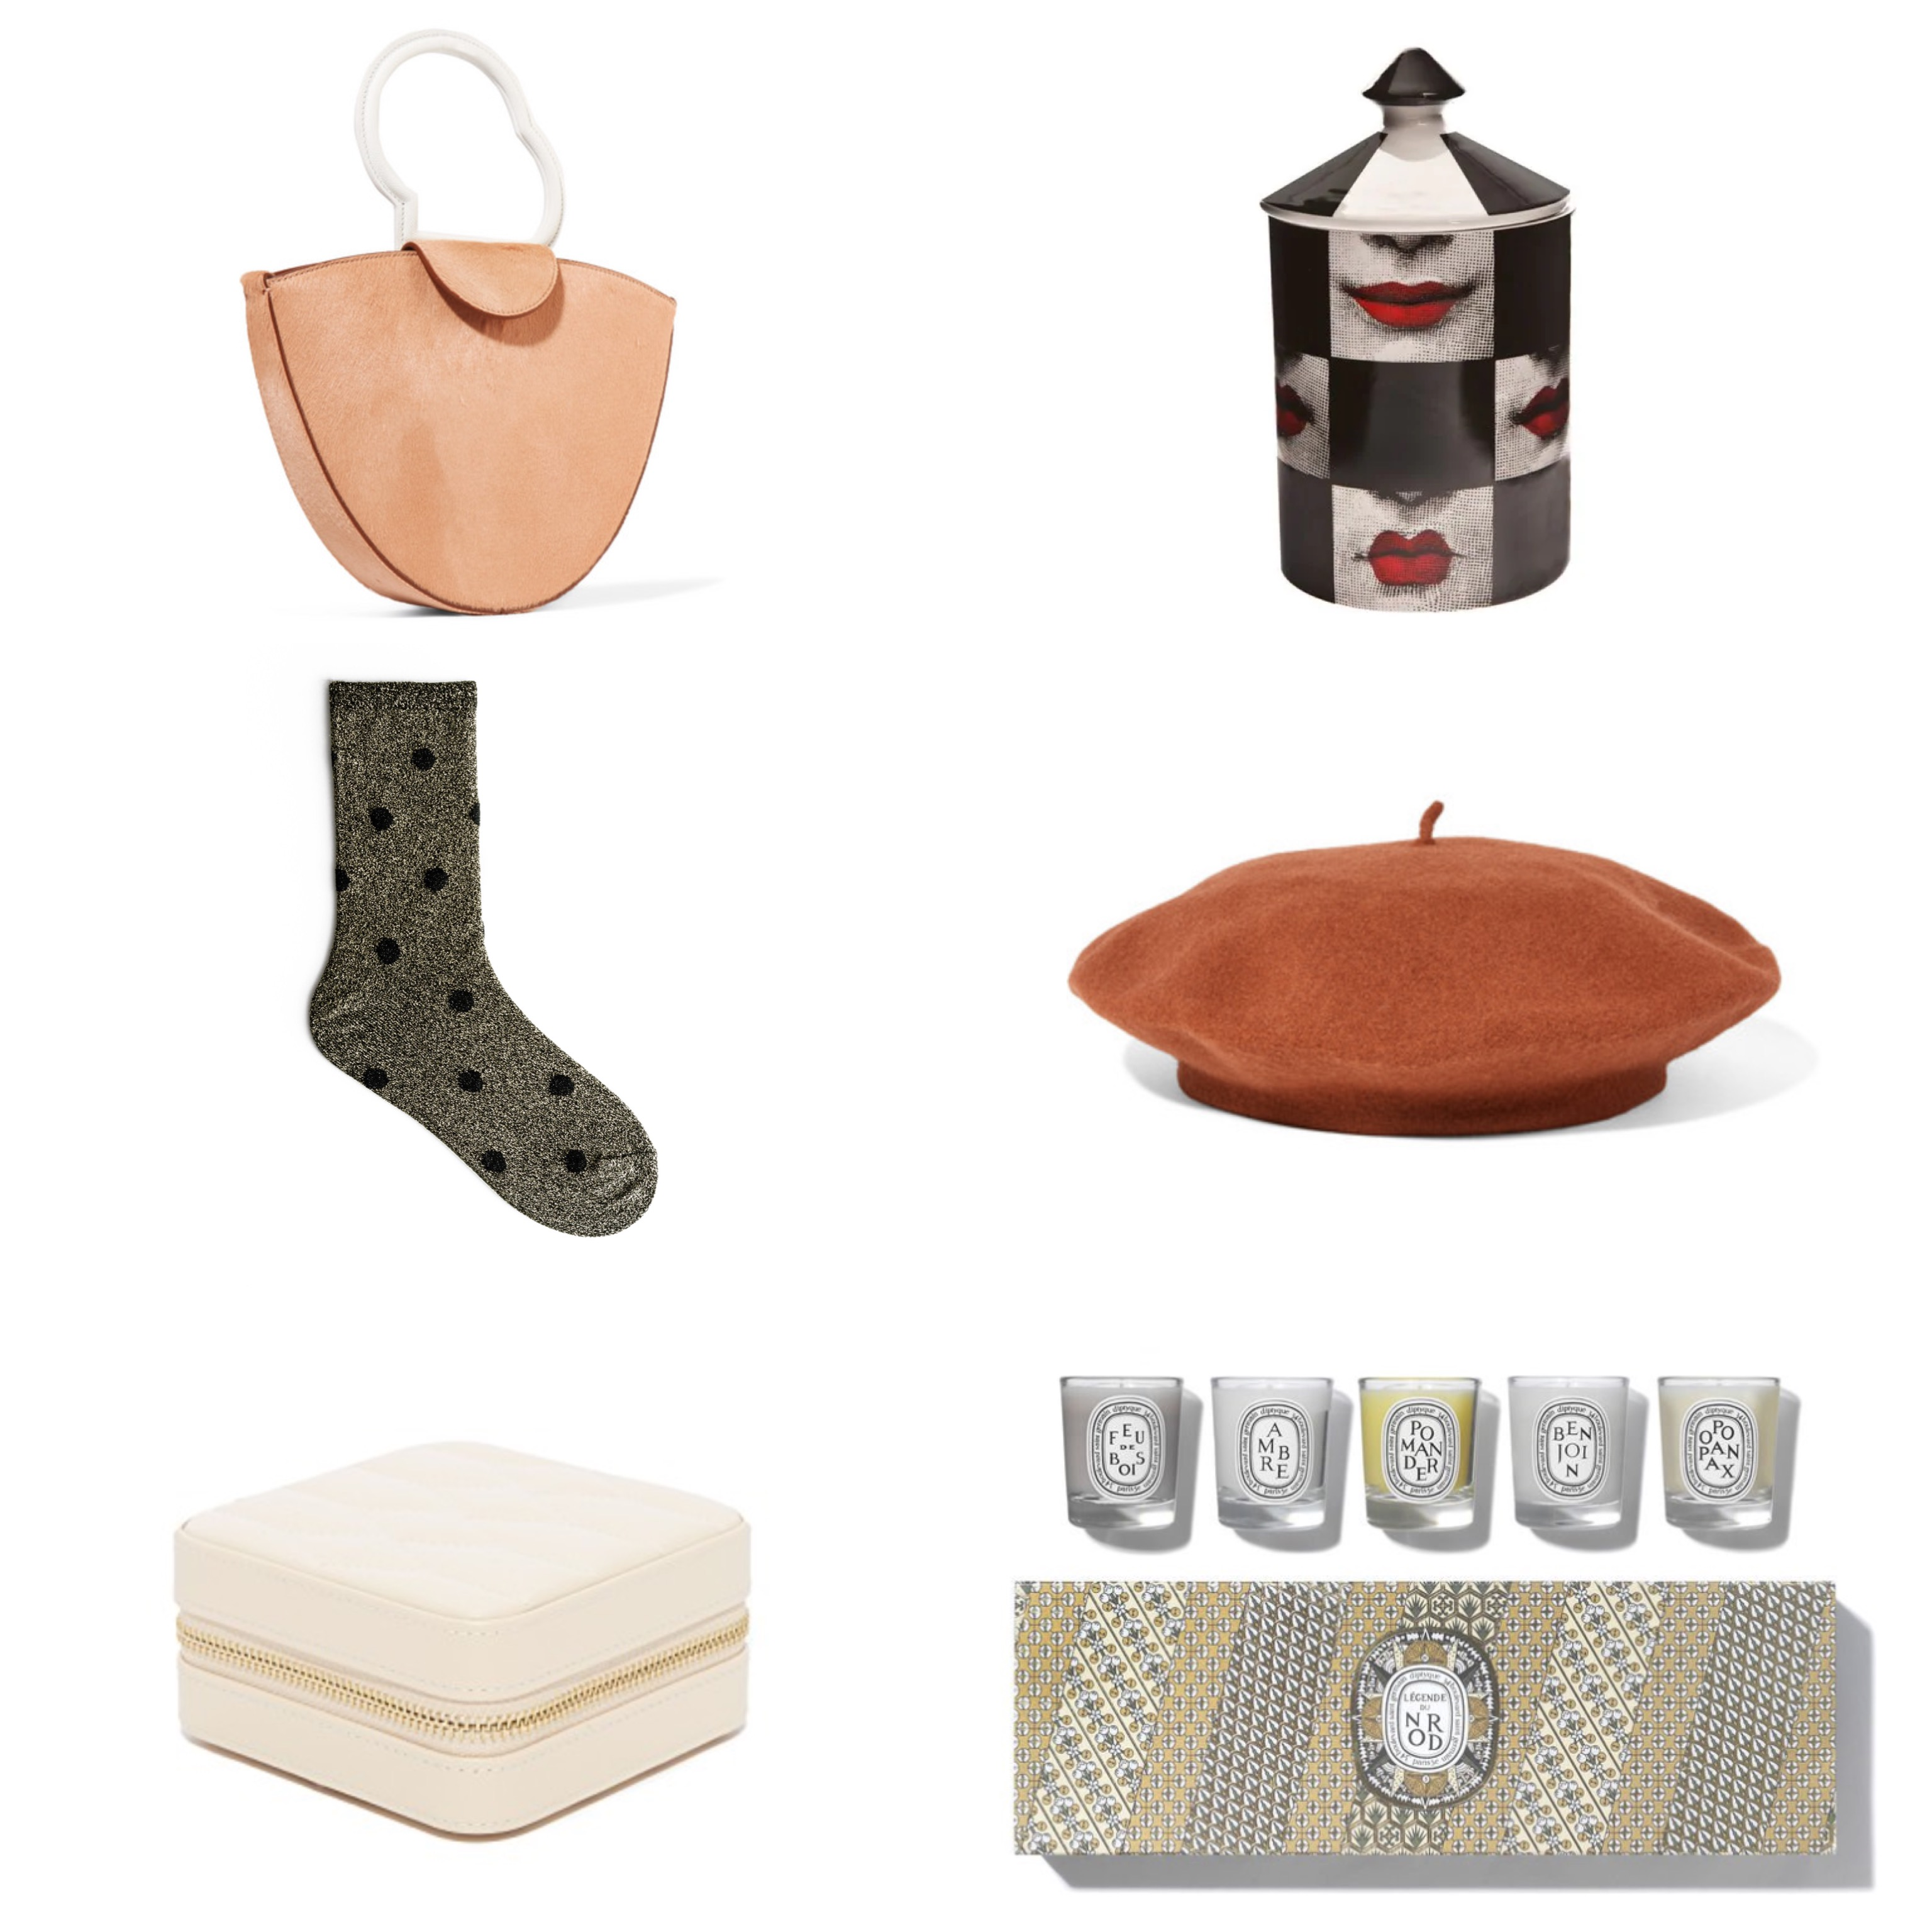 Looking for great Gifts Under $? You'll find them at Sharper Image!